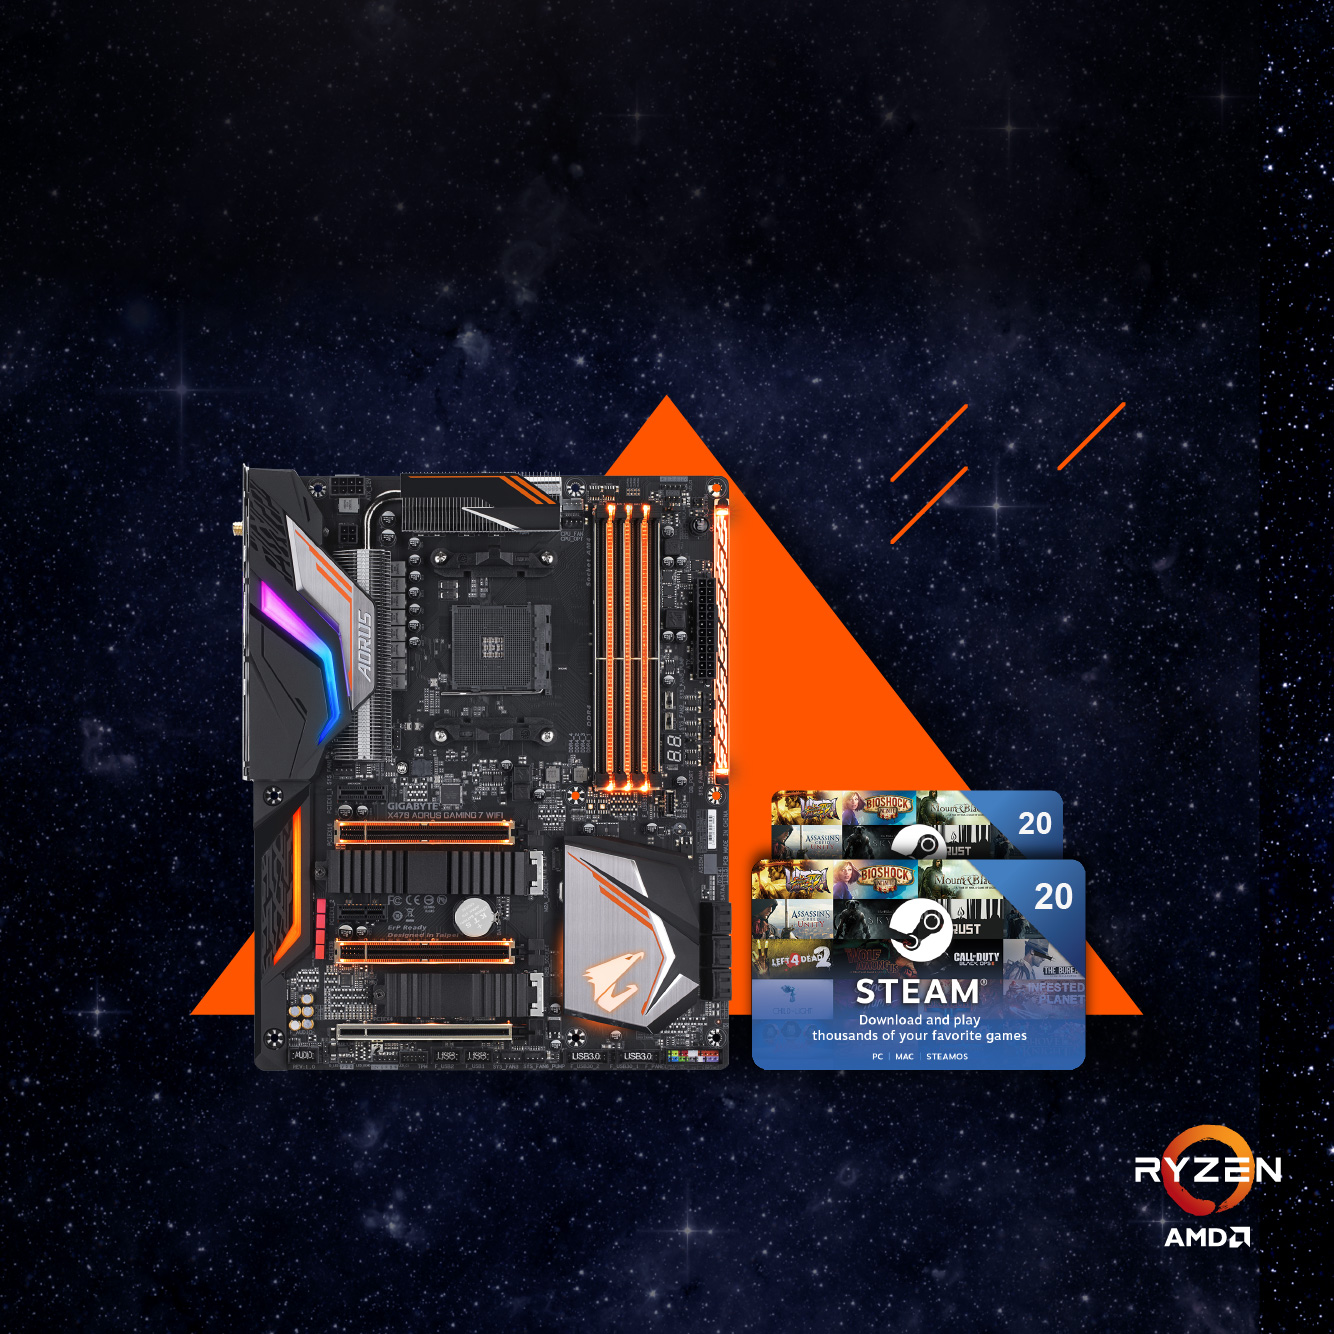 Buy the latest GIGABYTE AM4 motherboards get up to €40 FREE STEAM wallet codes!